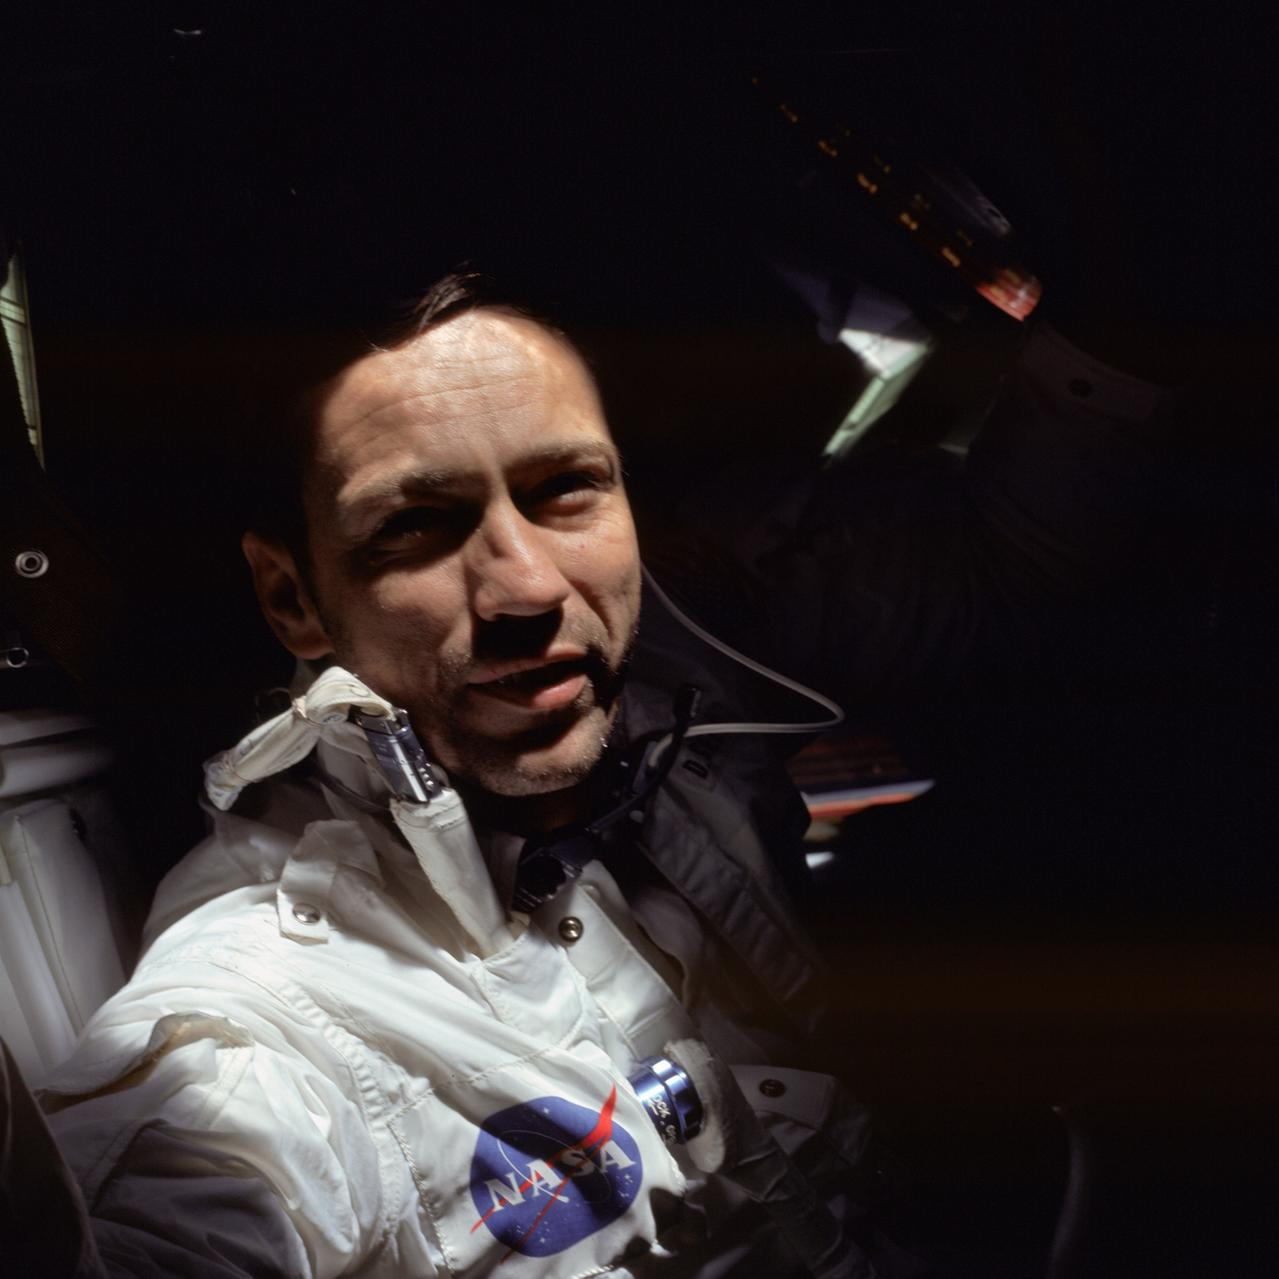 Astronaut Donn F. Eisele, Apollo 7 command pilot, is photographed during the Apollo 7 mission.